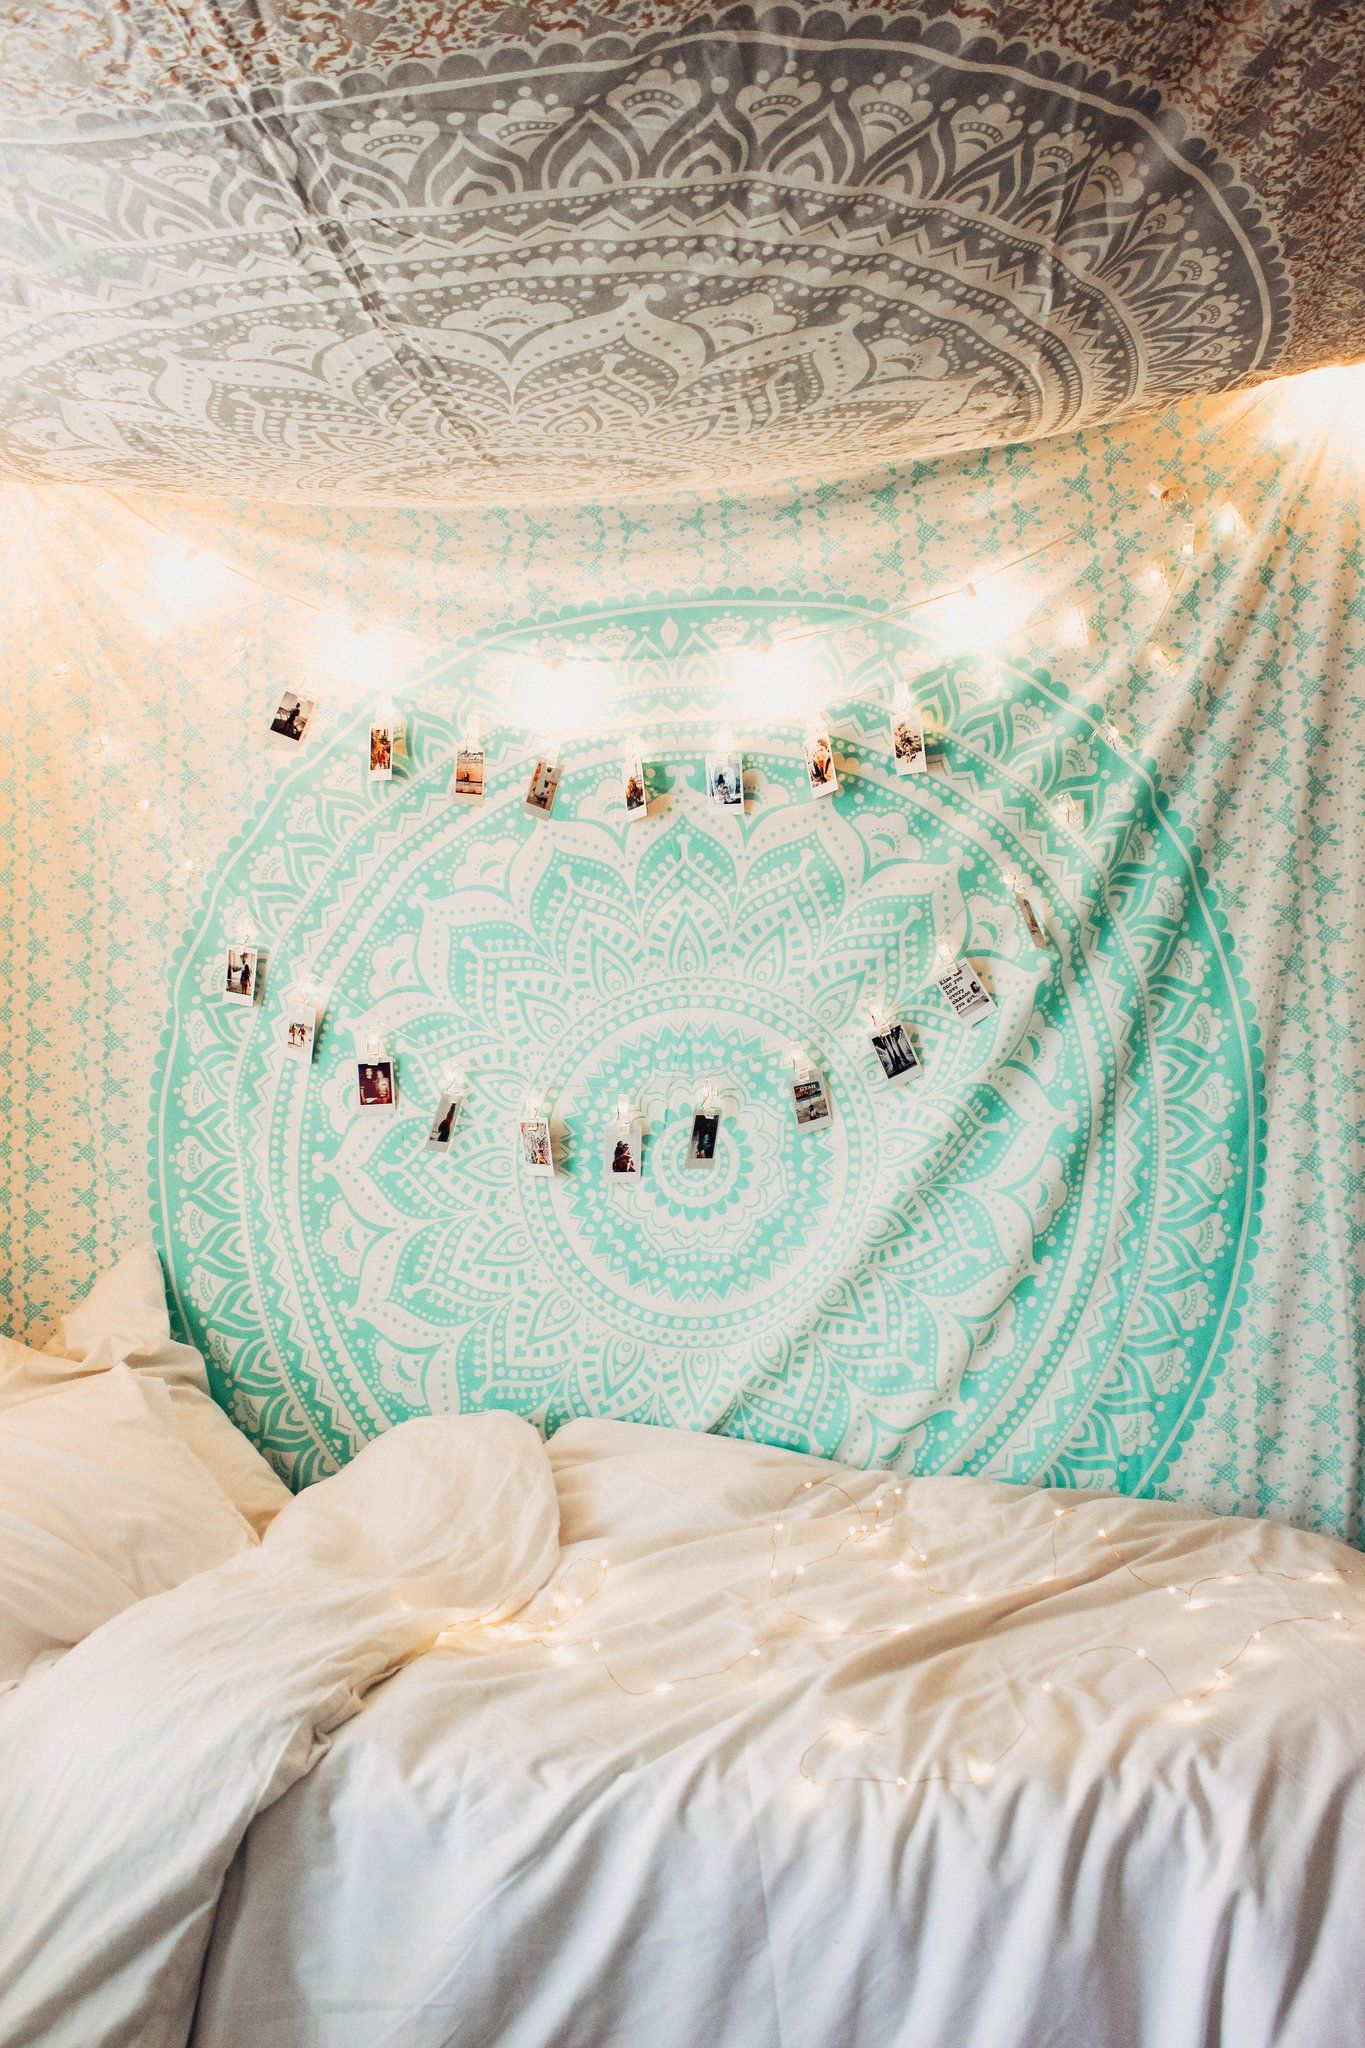 Mermaid Vibes Mandala Tapestry With Images Tapestry Bedroom